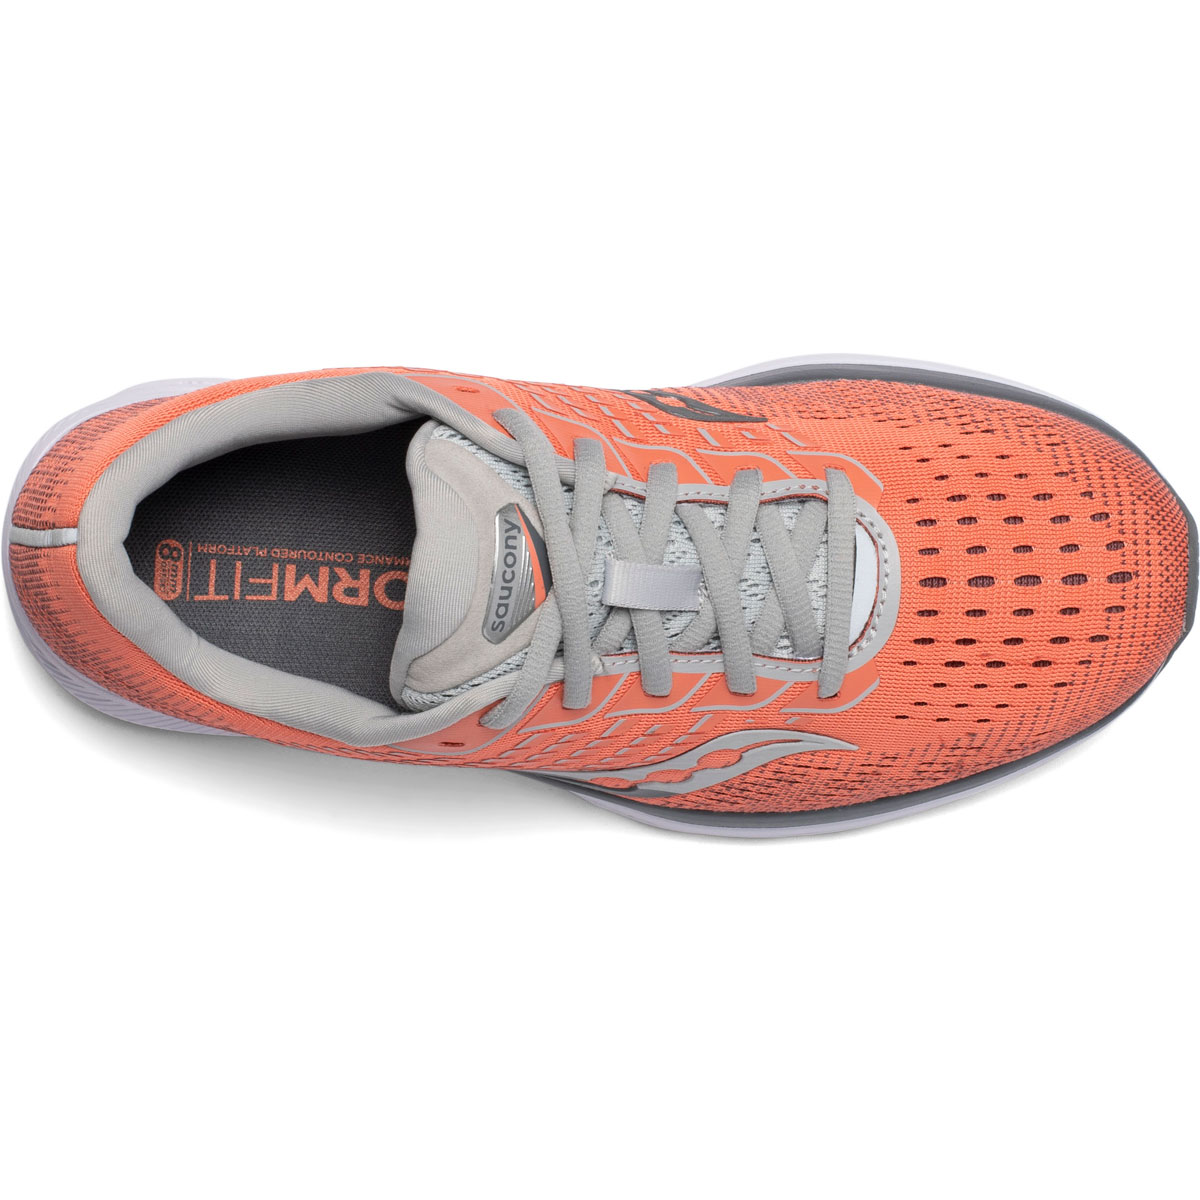 Women's Saucony Ride 13 Running Shoe - Color: Coral/Alloy - Size: 5 - Width: Regular, Coral/Alloy, large, image 3